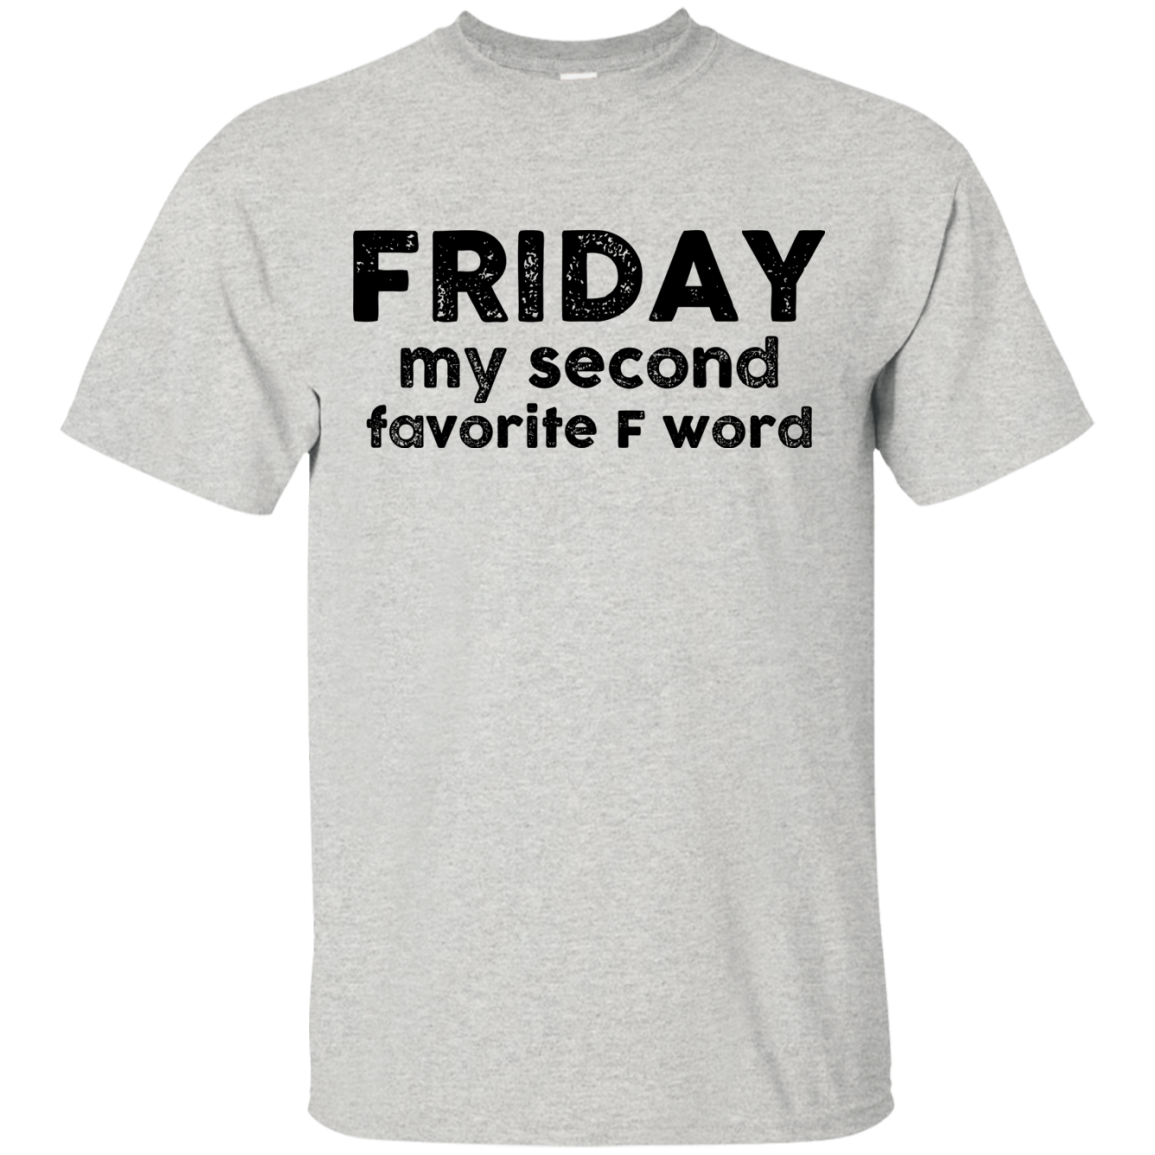 Friday Shirt Friday my second favorite F word T shirt,Tank top & Hoodies